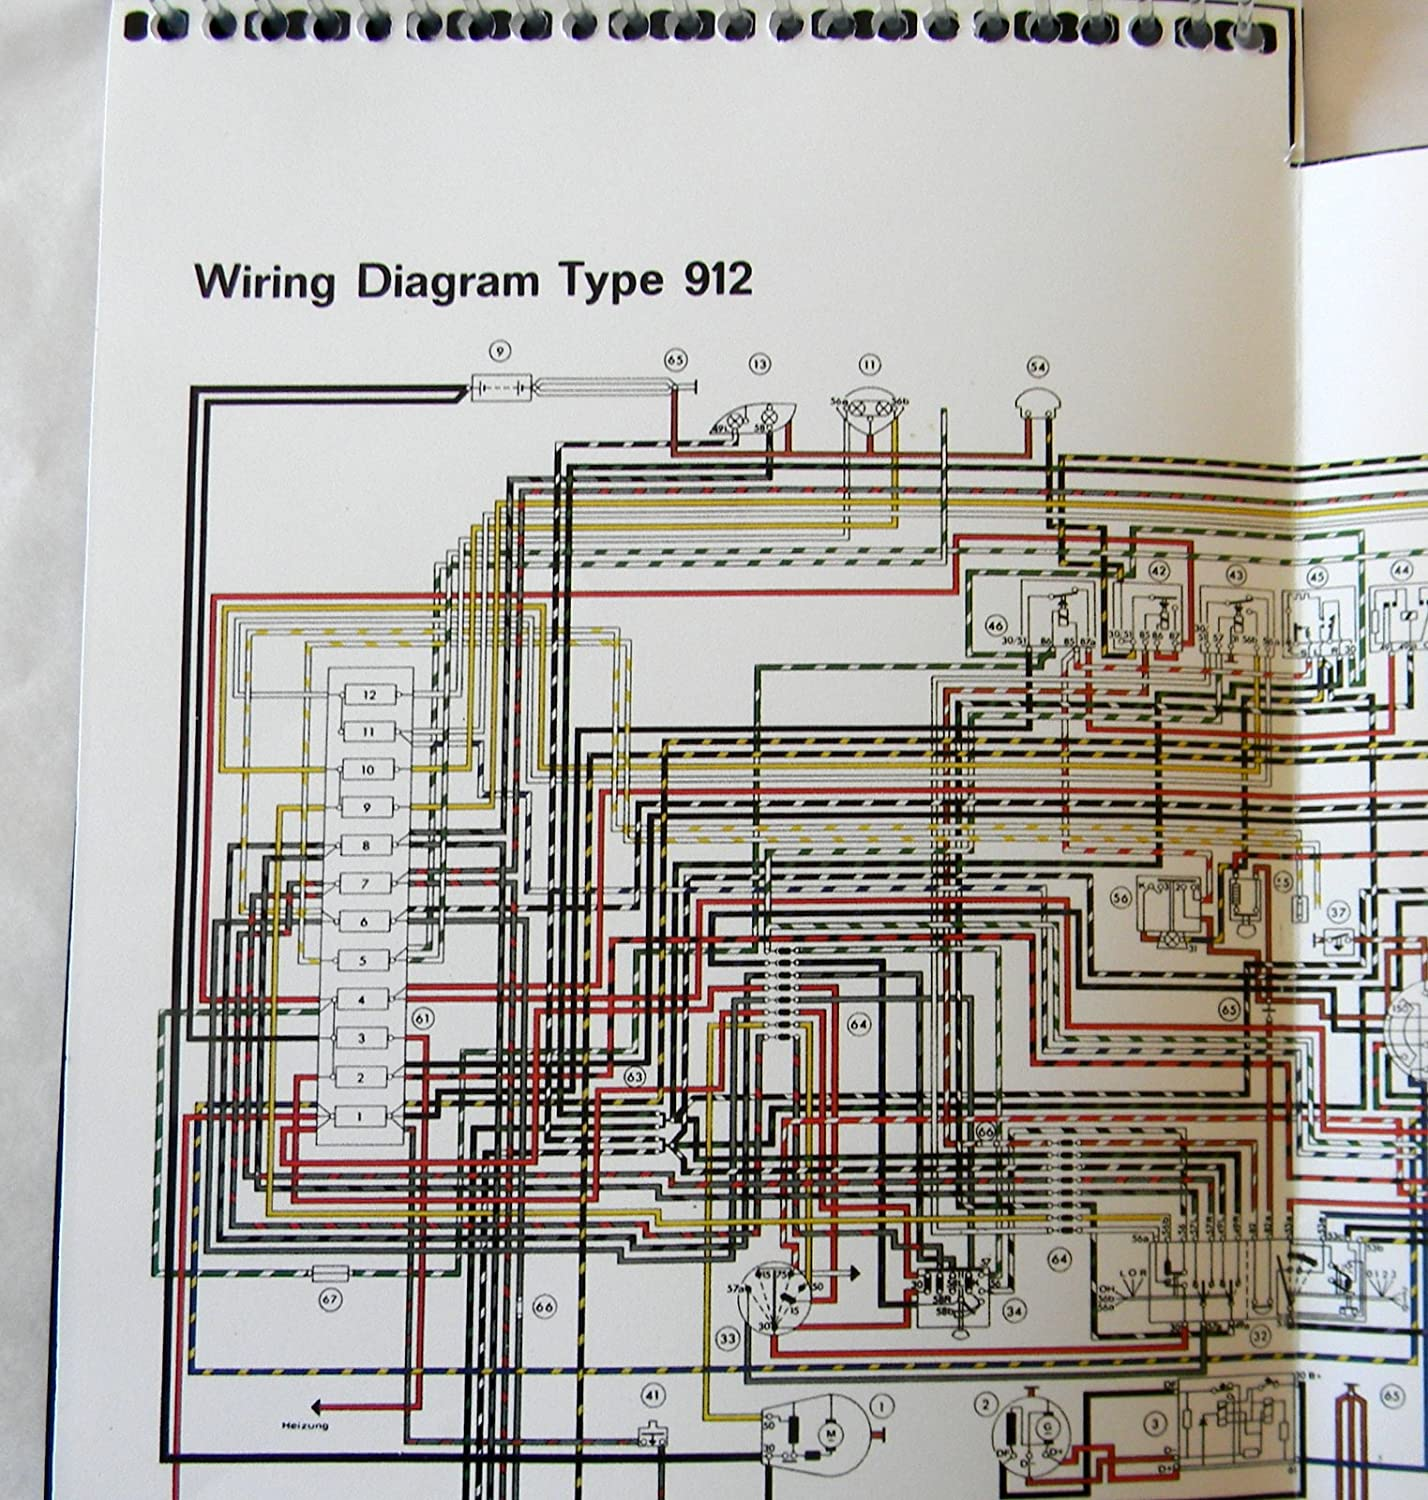 1967 porsche 912 wiring diagram amazon com 1968 porsche 912 owners manual 1967 1969 new factory  amazon com 1968 porsche 912 owners